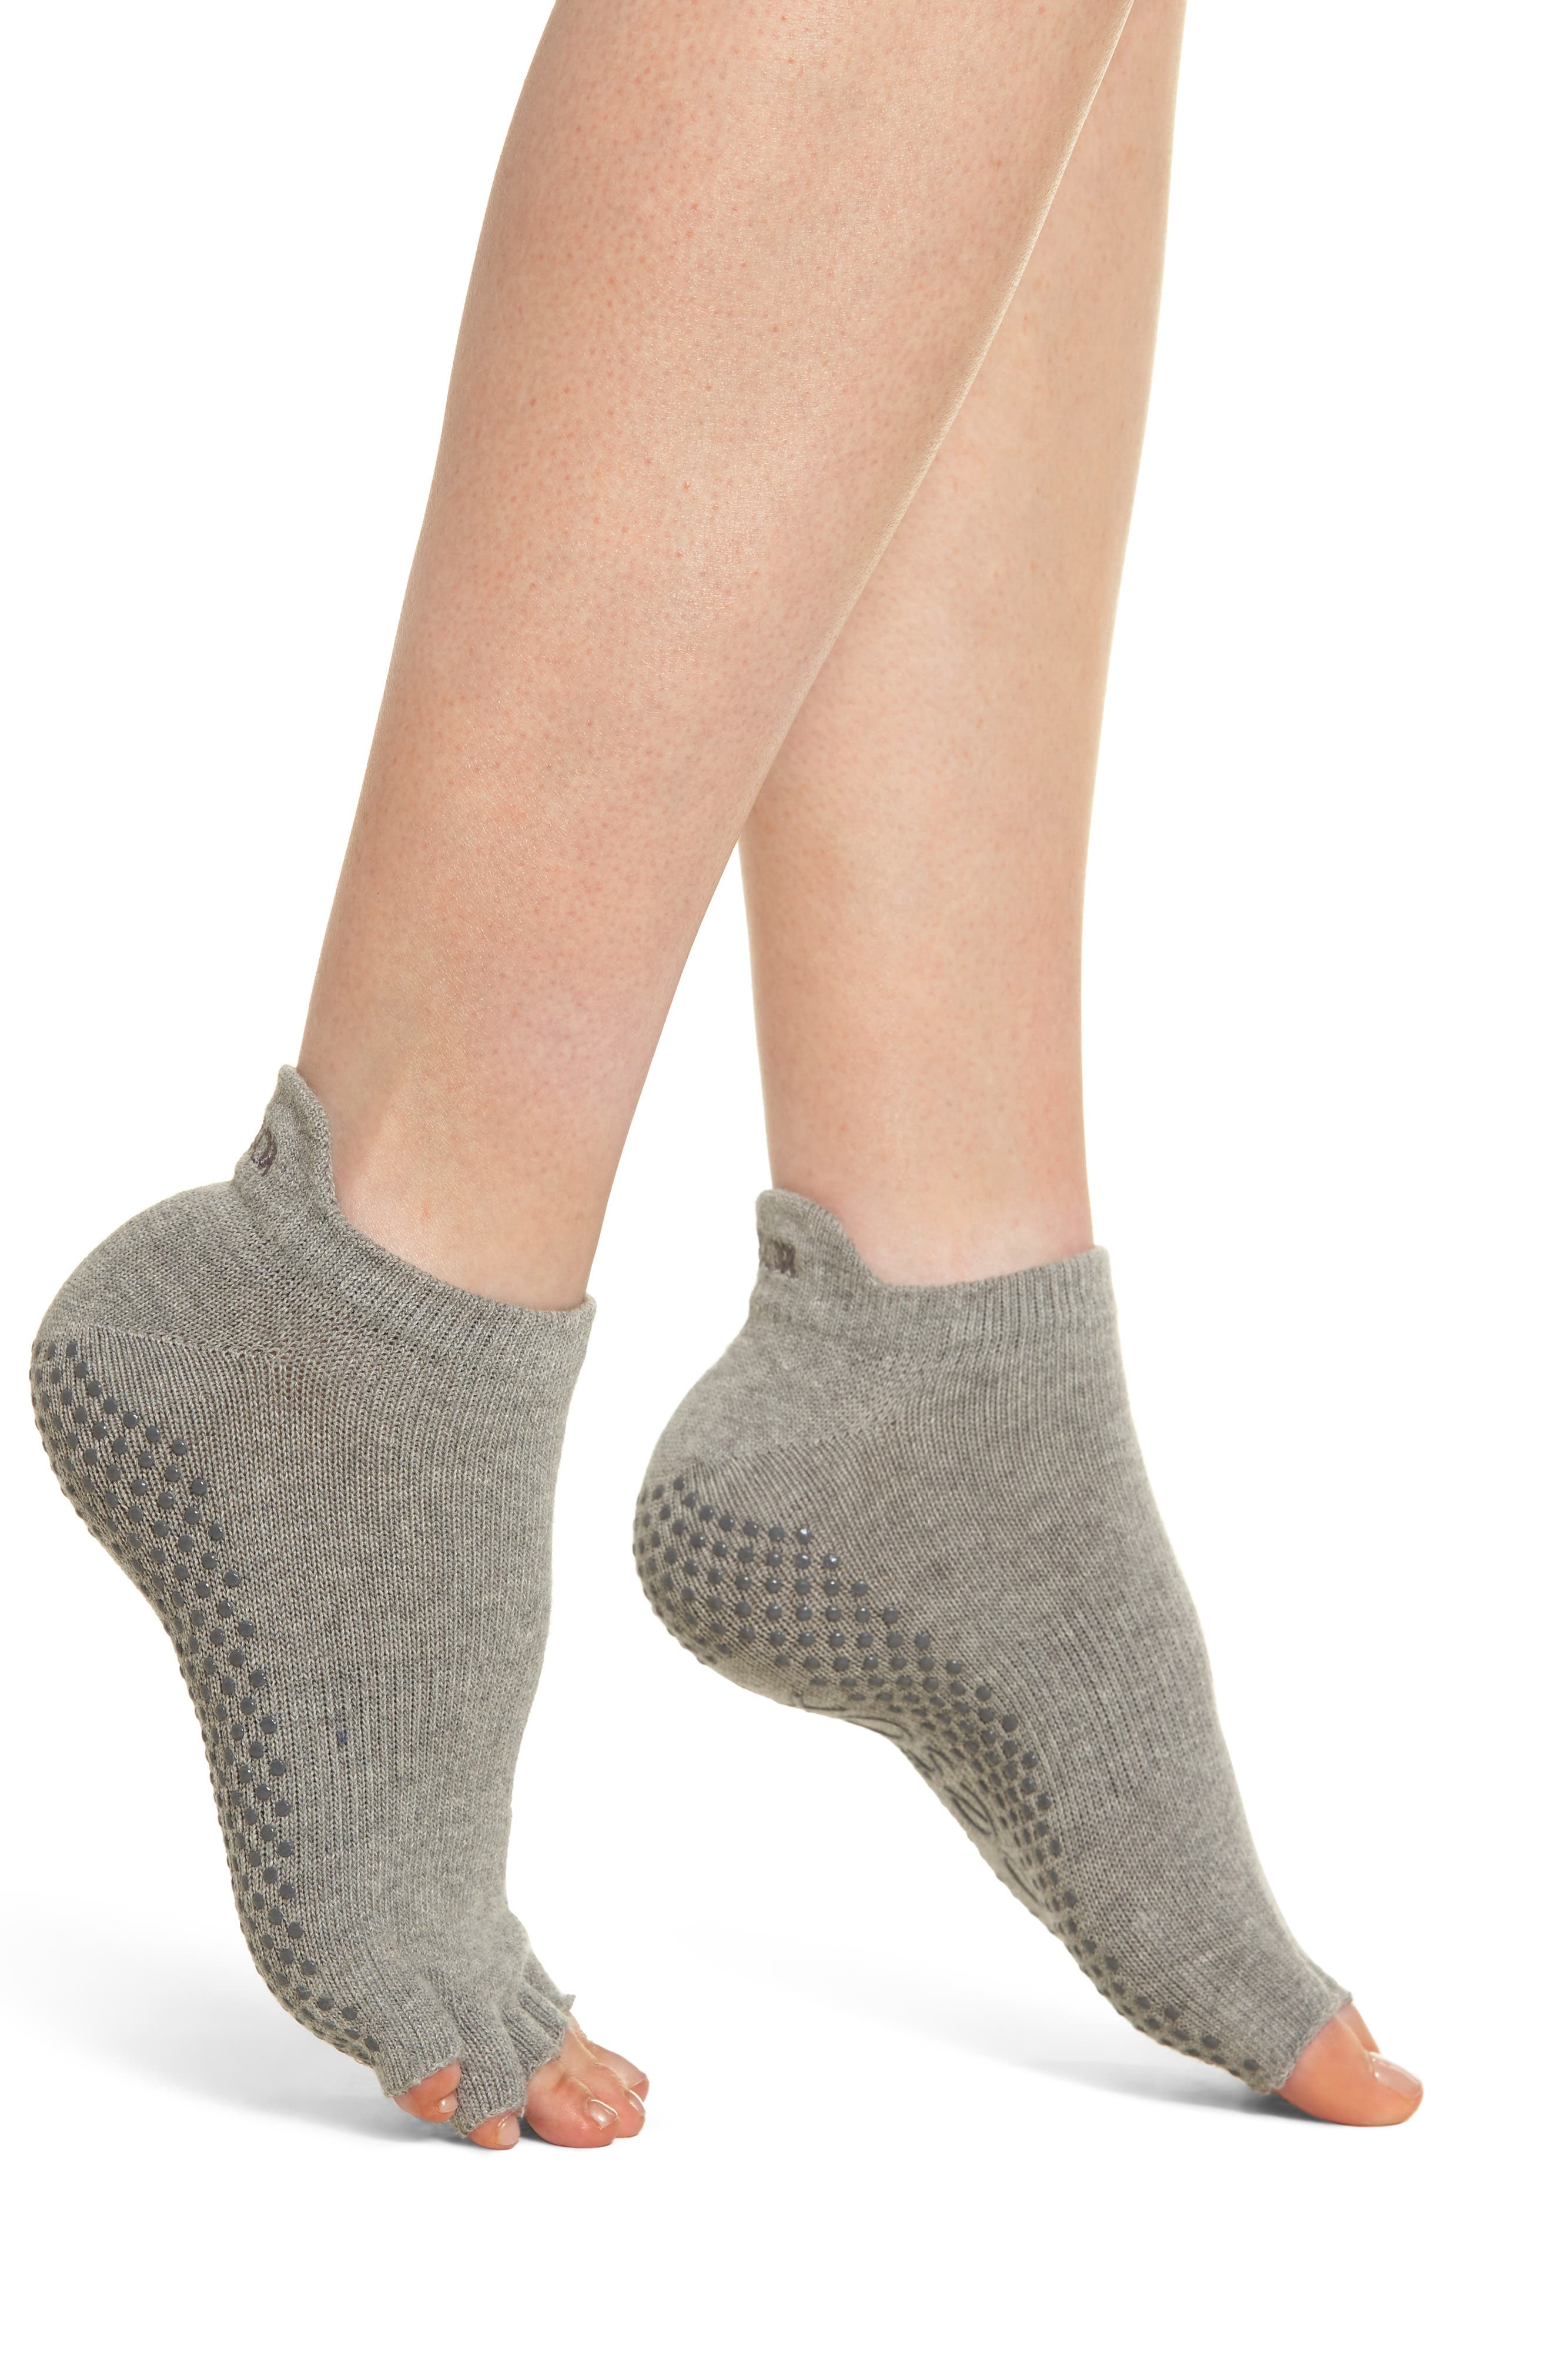 Low Rise Half-Toe Gripper Socks,                         Main,                         color, HEATHER GREY